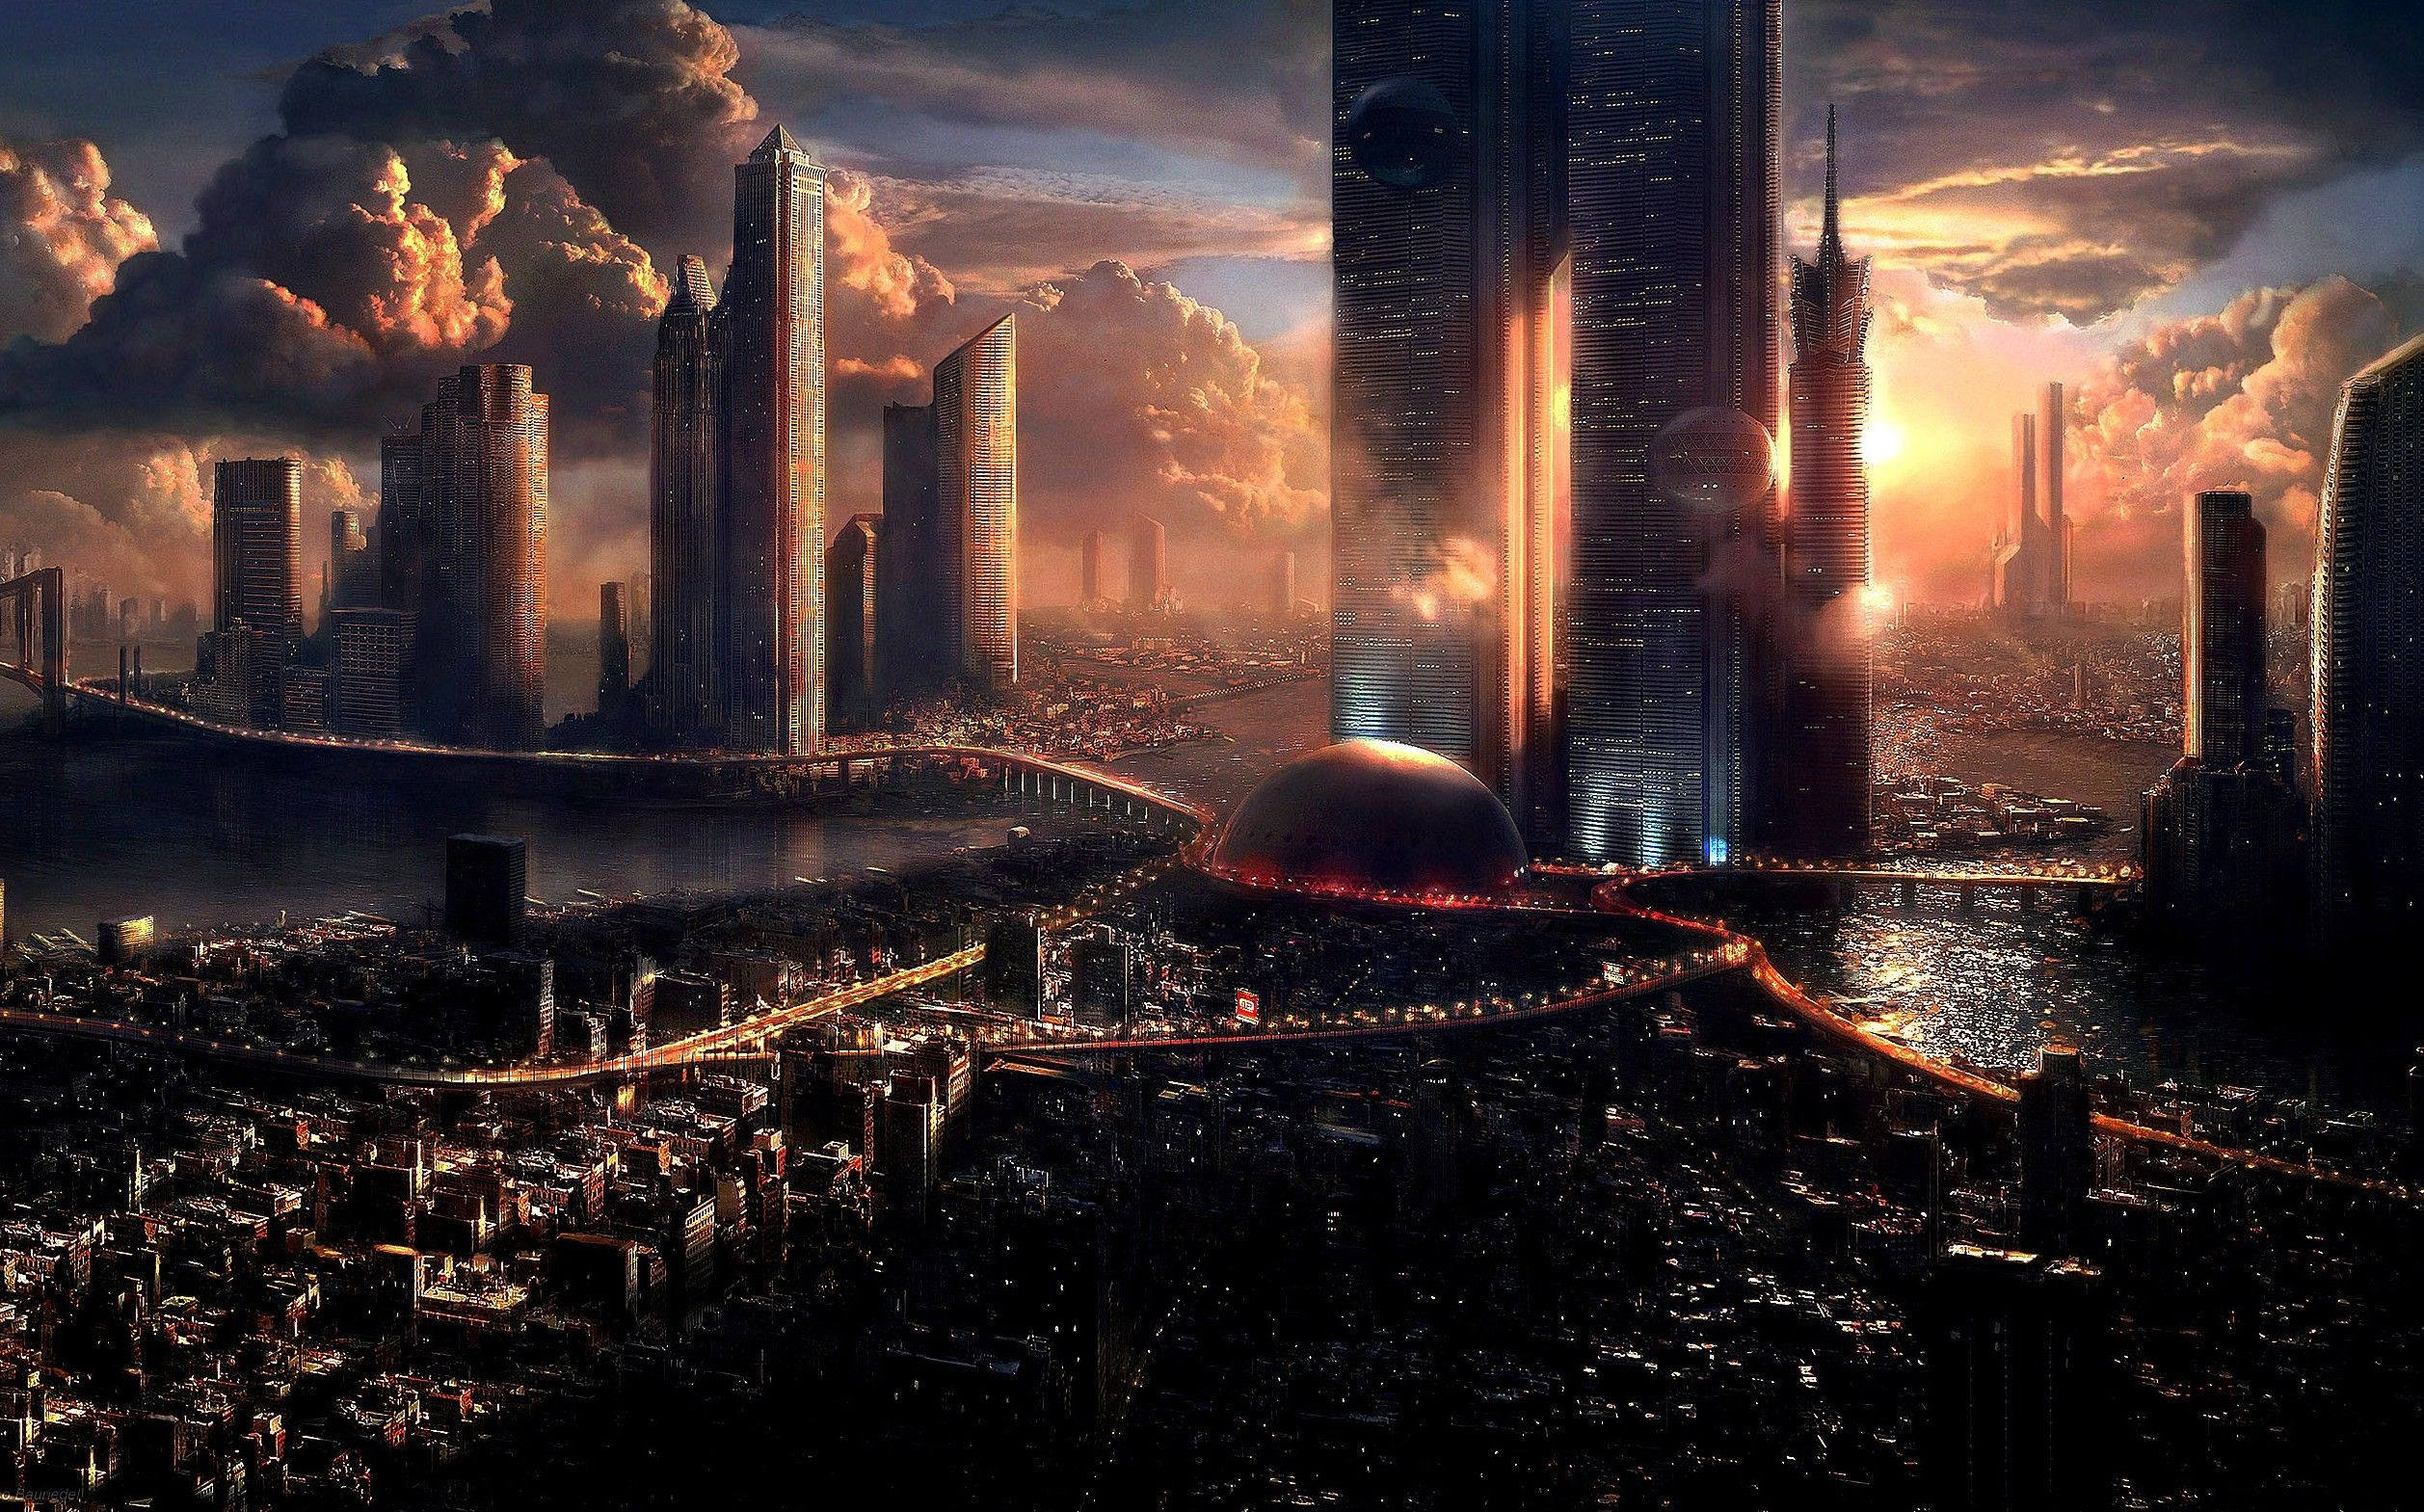 Building And City Futuristic Desktop HD Wallpaper Future Share